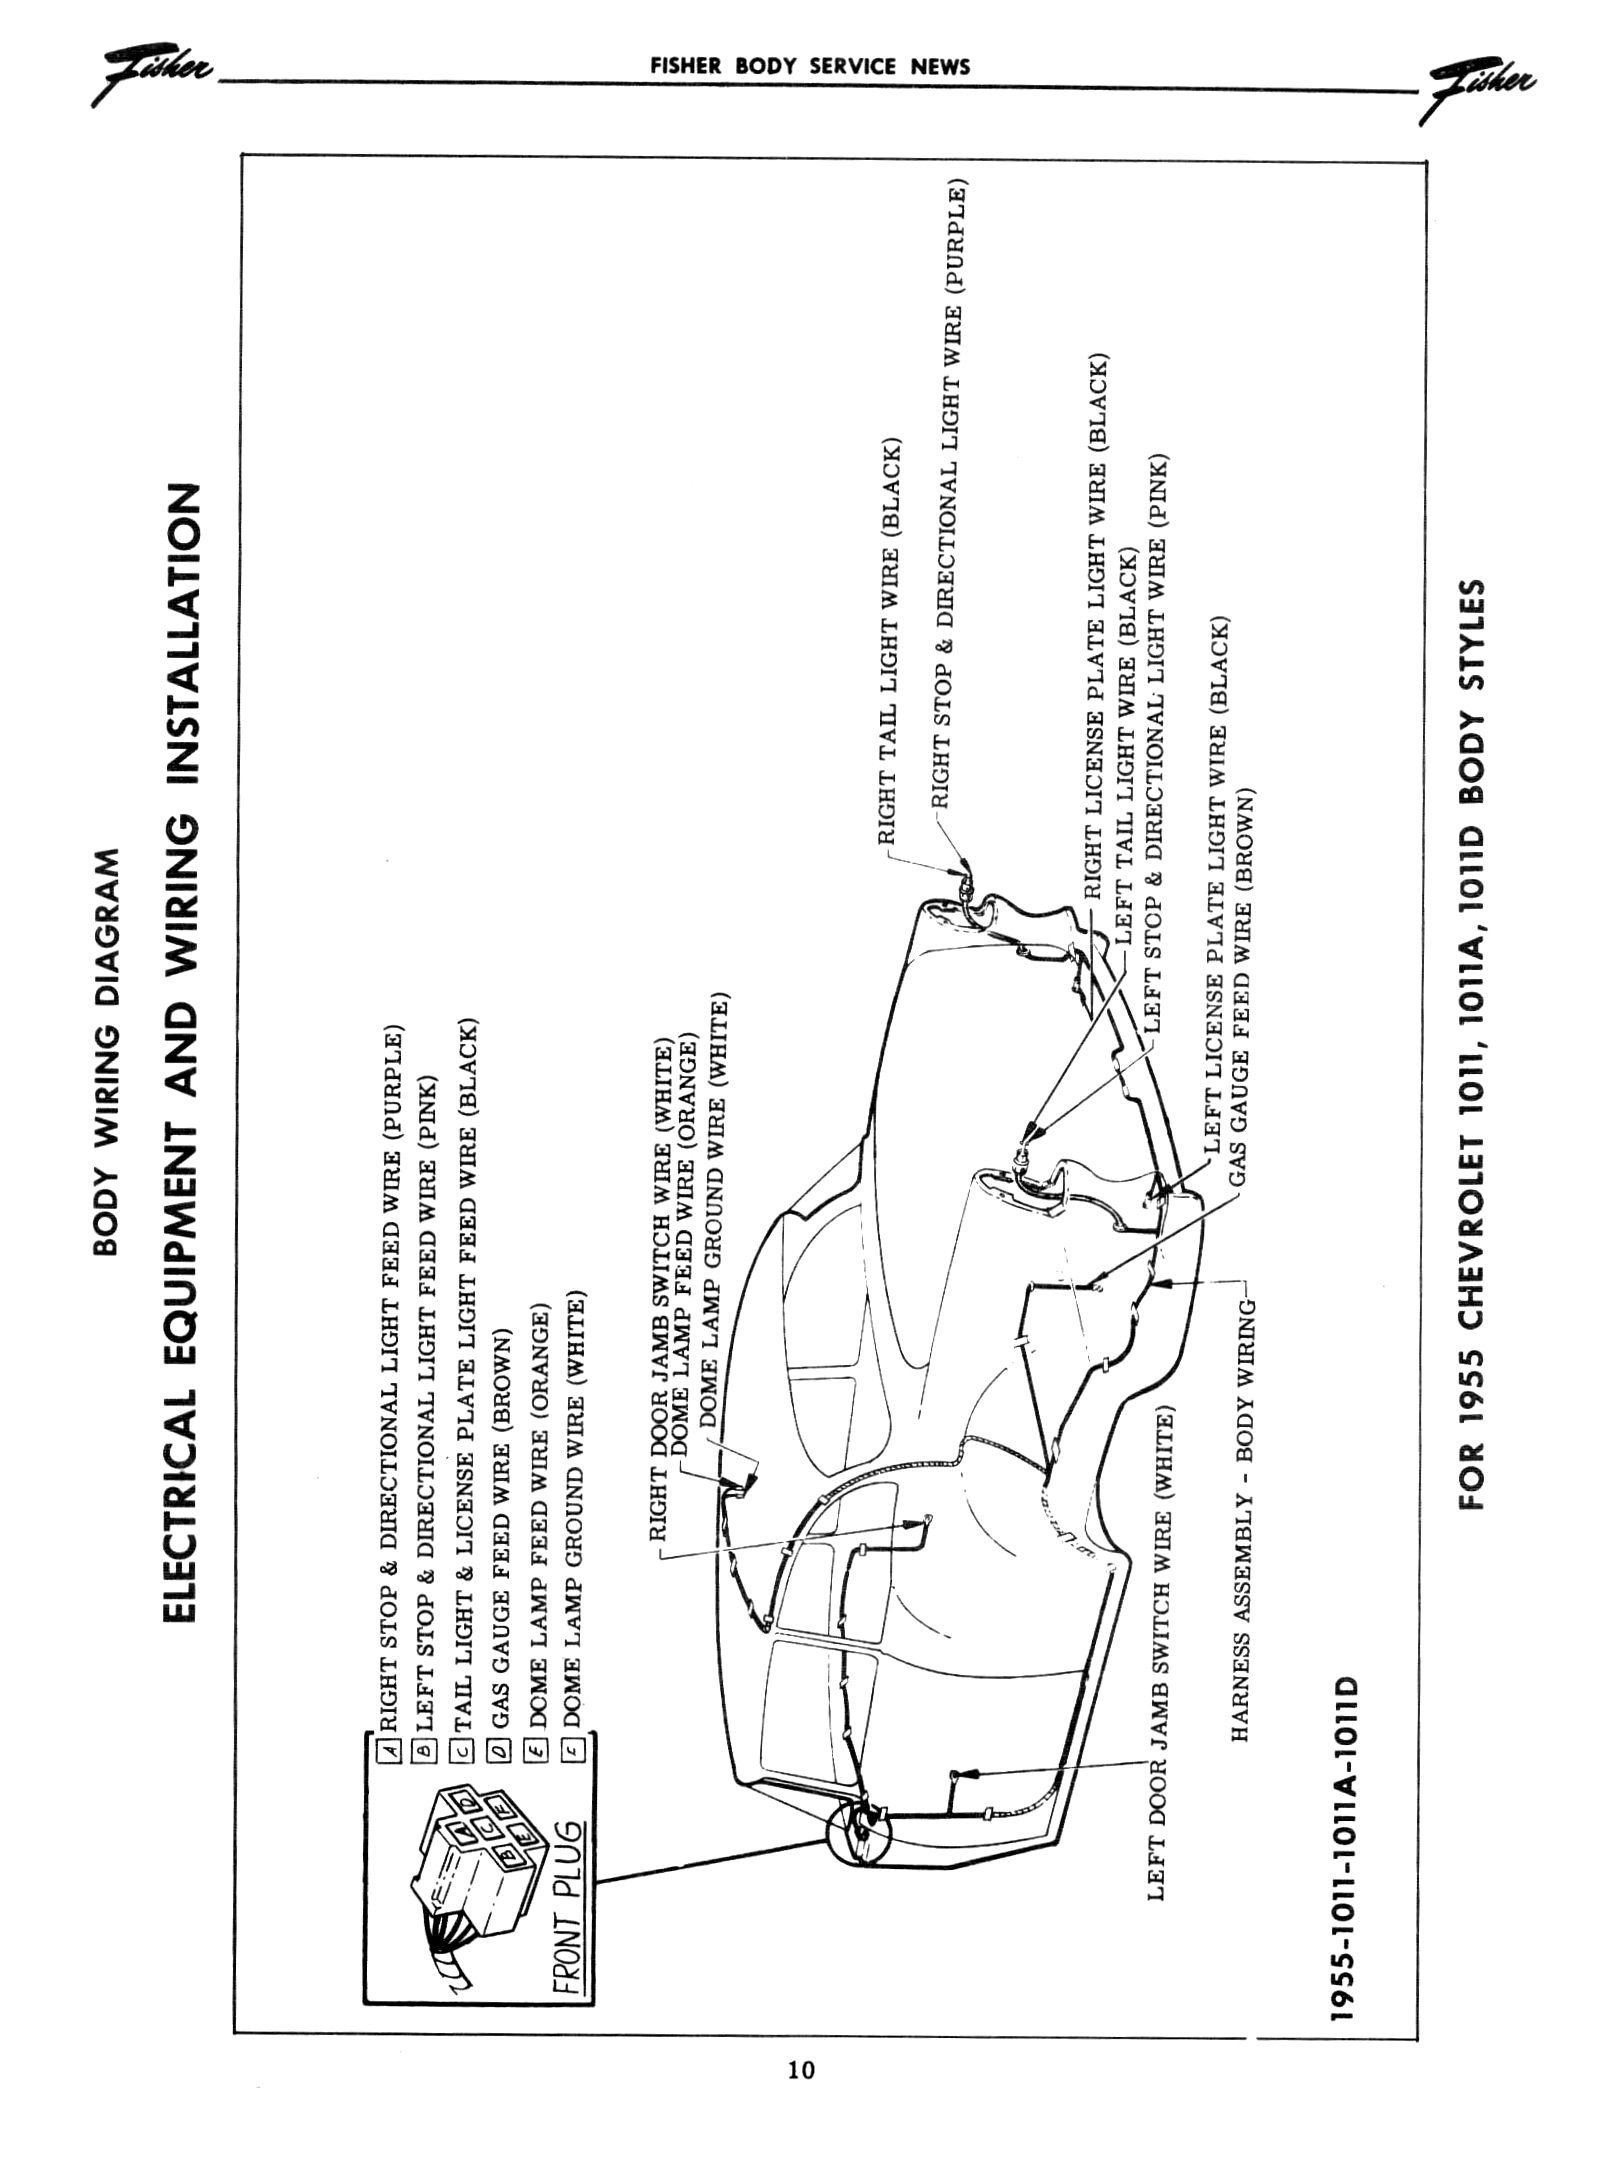 1950 chevy tail light wiring diagram